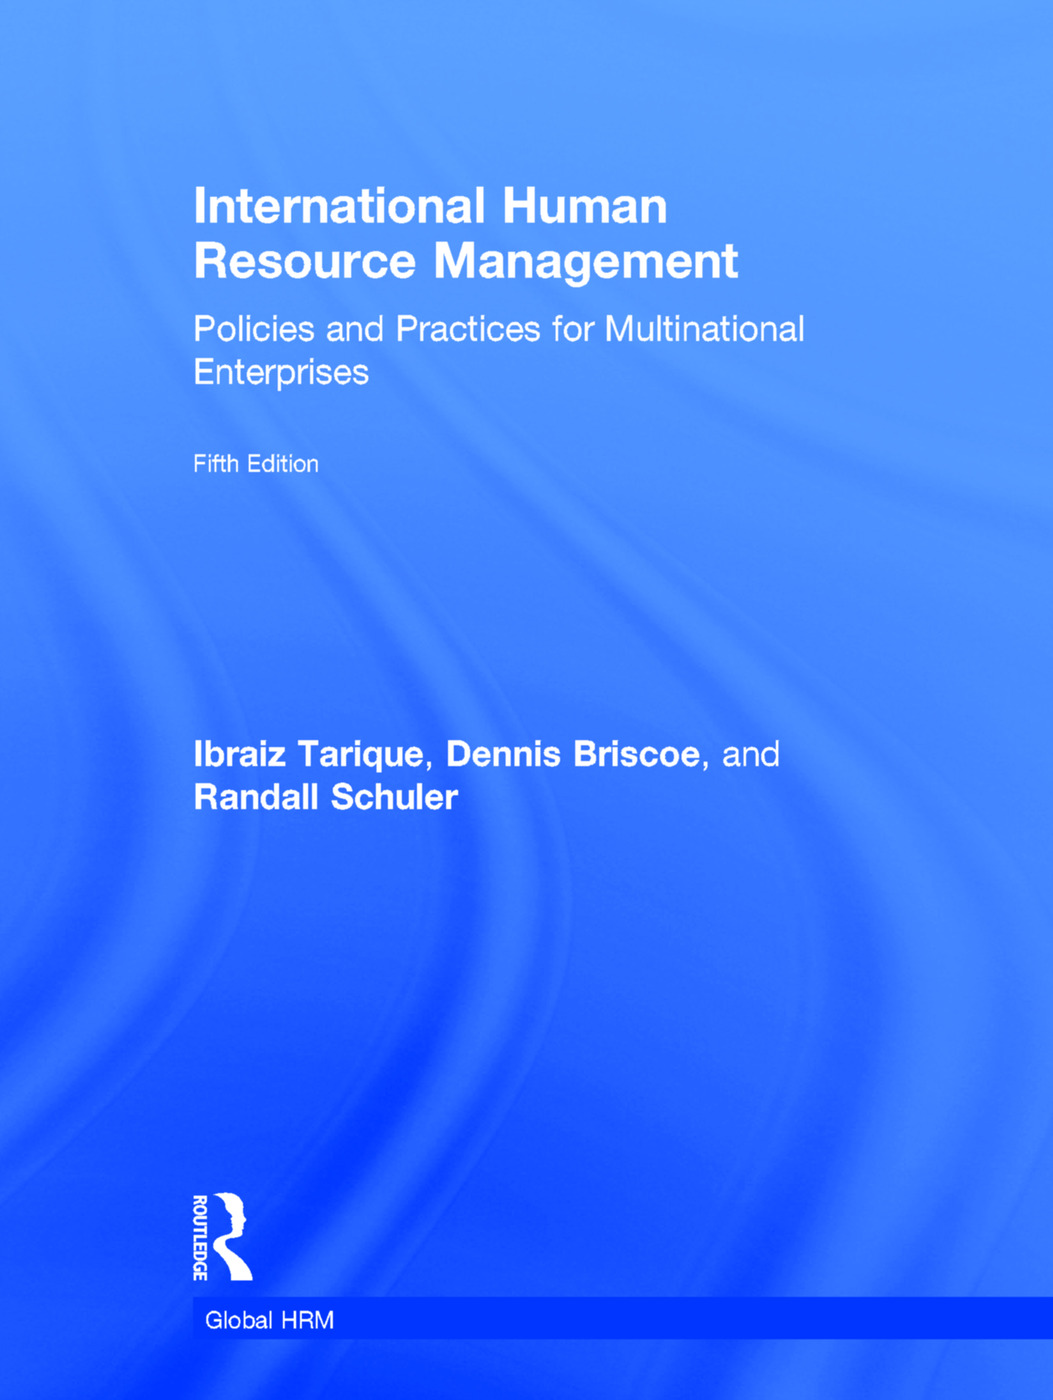 International Human Resource Management: Policies and Practices for Multinational Enterprises book cover